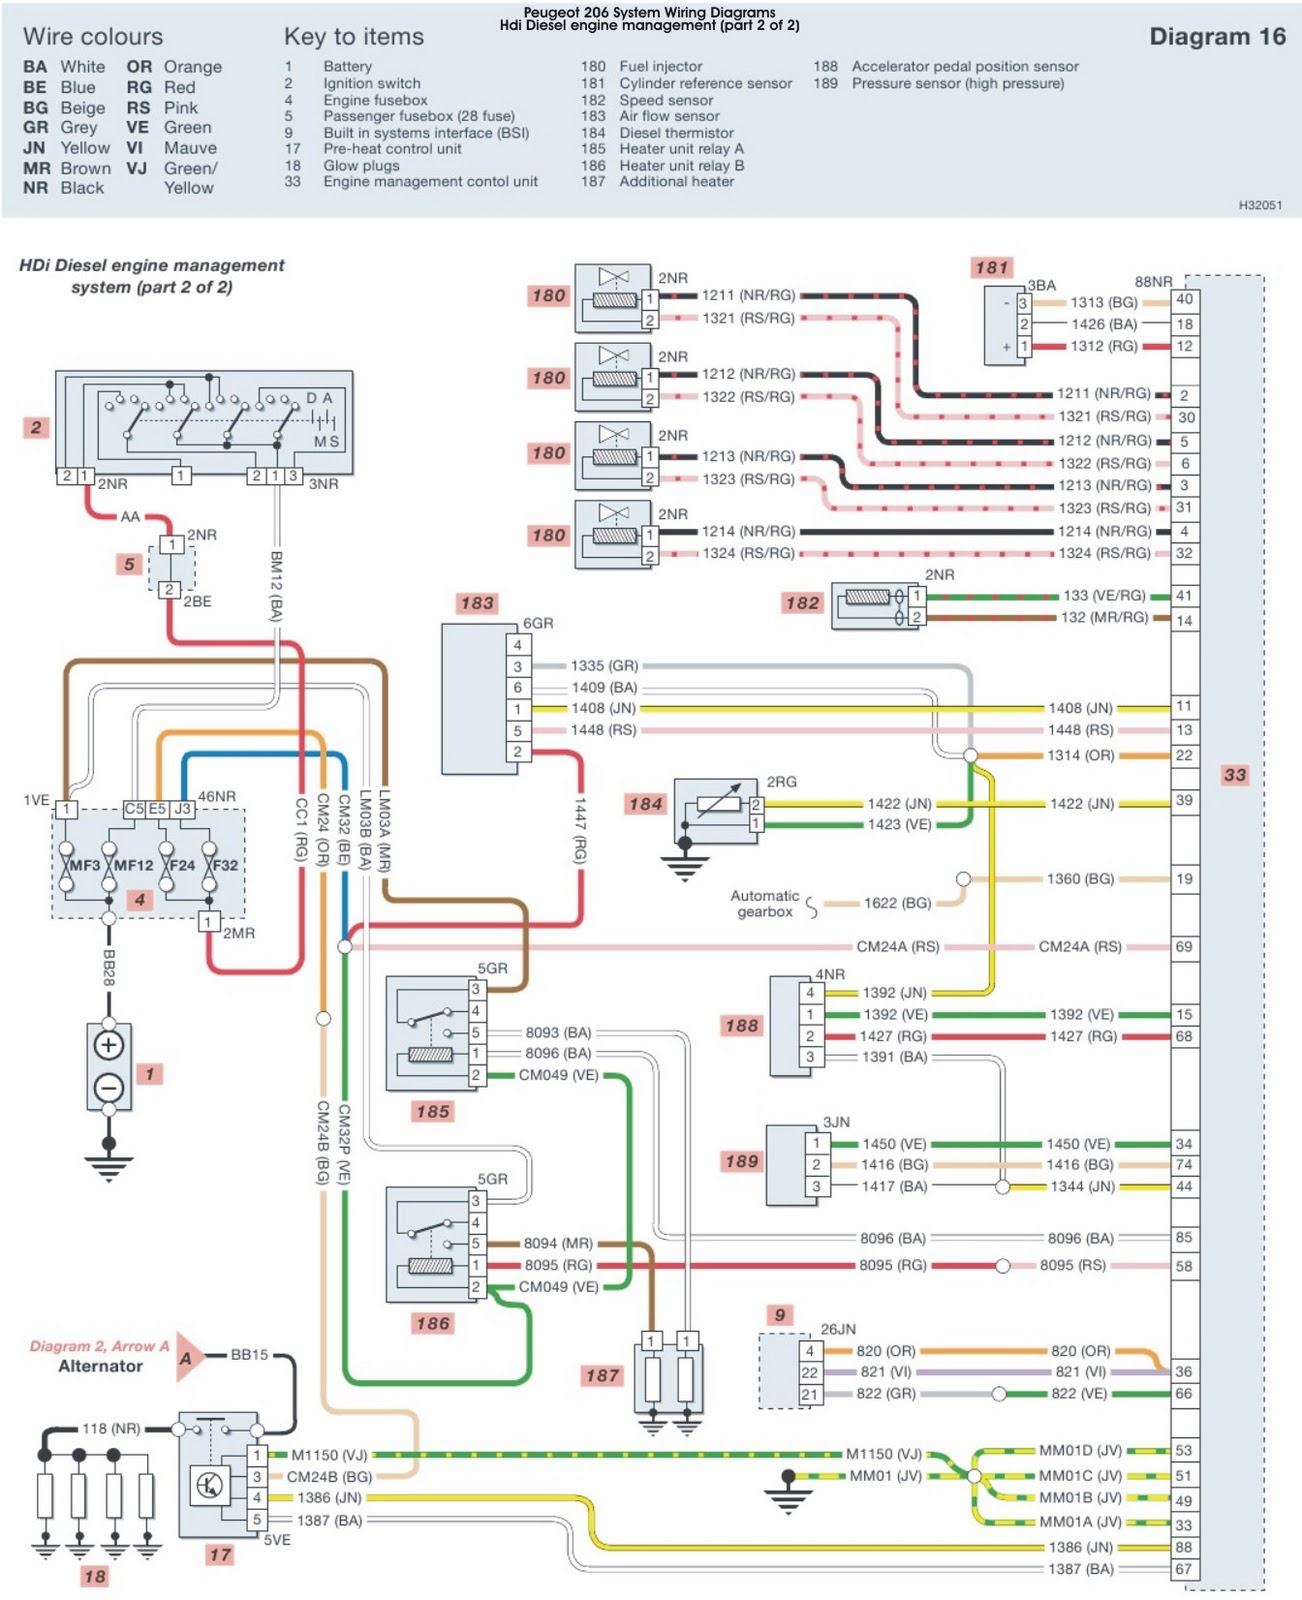 Ta850 Wiring Diagram Detailed Schematics 1966 Mustang Engine Commodore Home For 1997 Schematic Diagrams